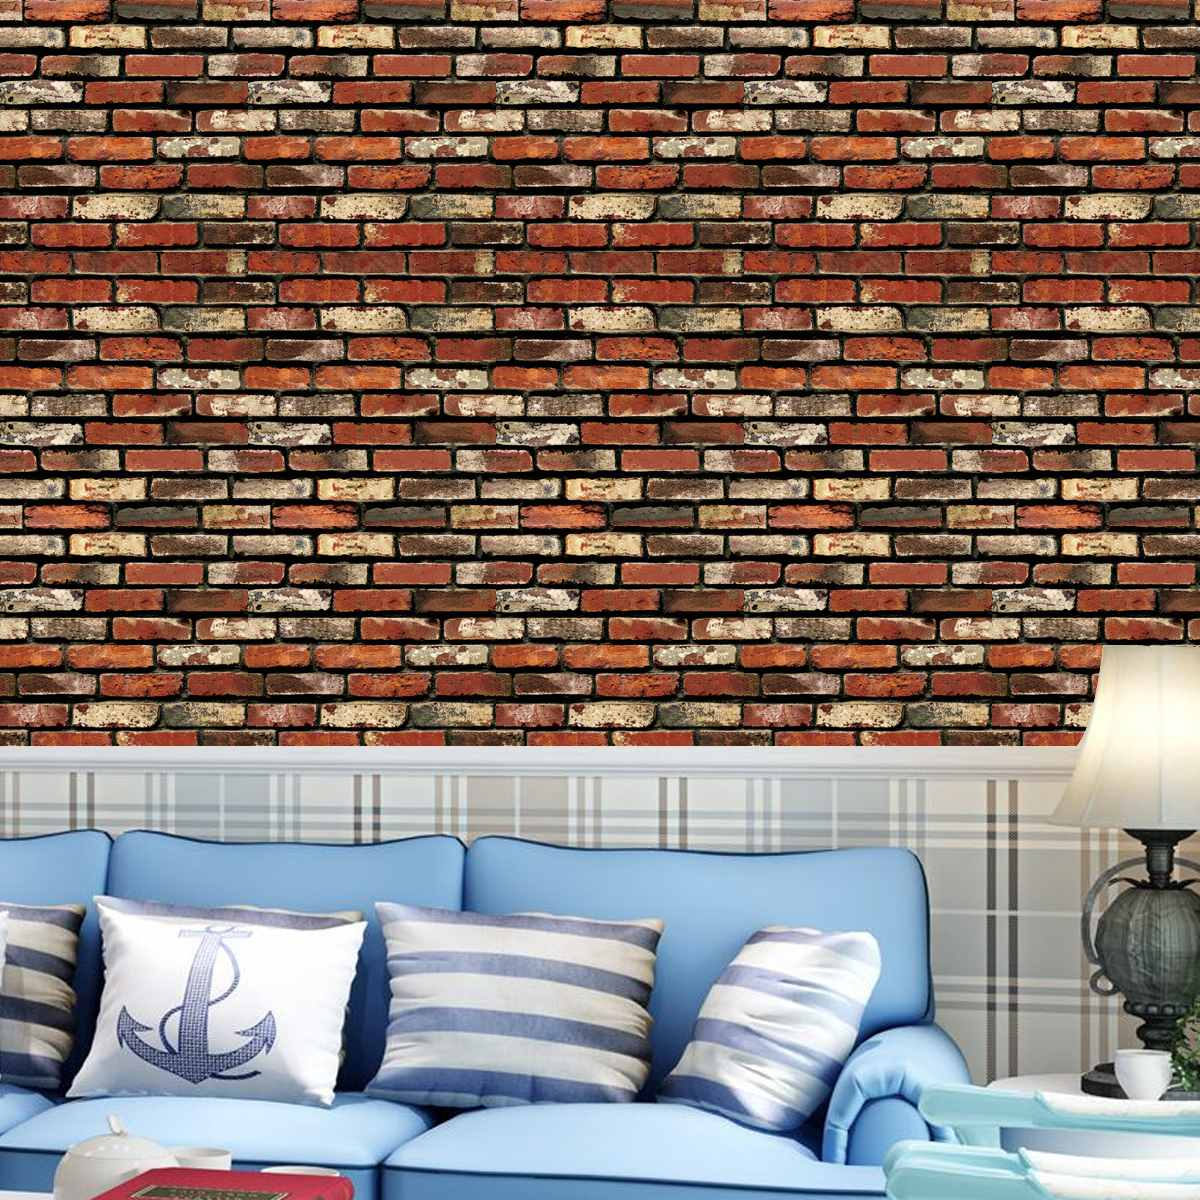 45cmx10m 3D DIY WallPapers Brick Stone Pattern Sticker Rolls PVC Self-adhesive Backdrop Living Room Wall Sticker Decoration45cmx10m 3D DIY WallPapers Brick Stone Pattern Sticker Rolls PVC Self-adhesive Backdrop Living Room Wall Sticker Decoration